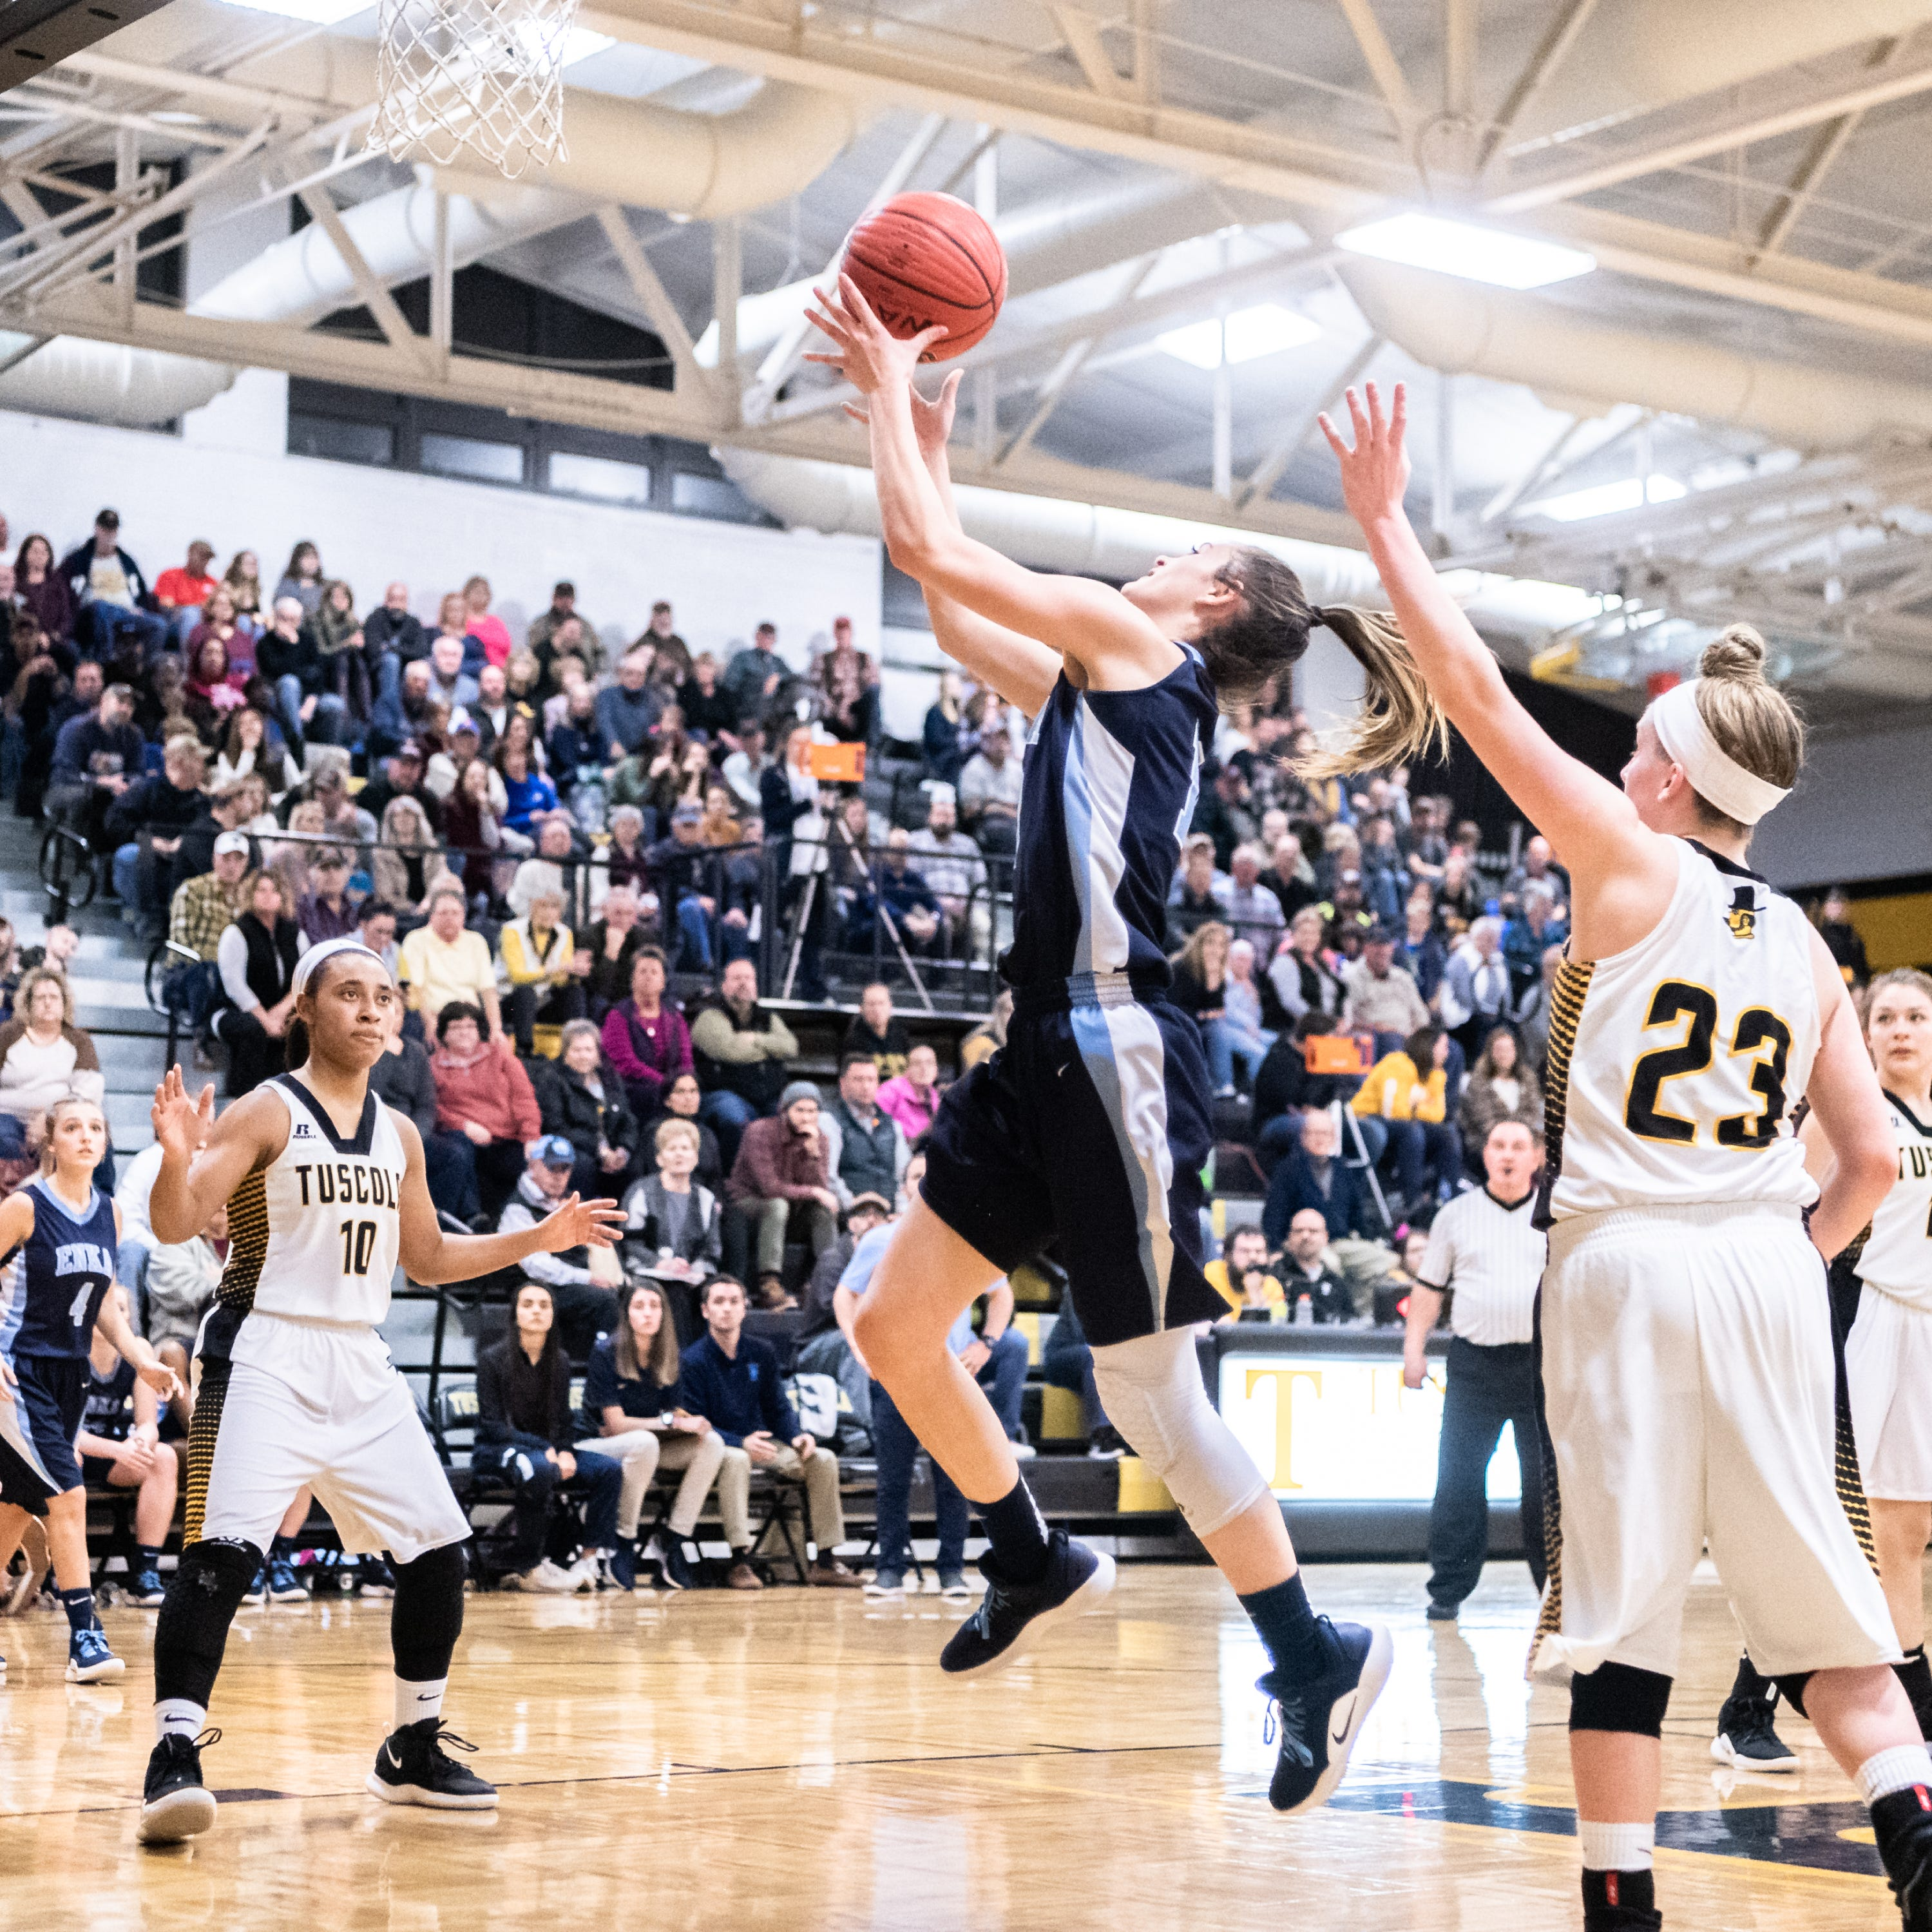 Carver's second half play lifts Enka over Tuscola